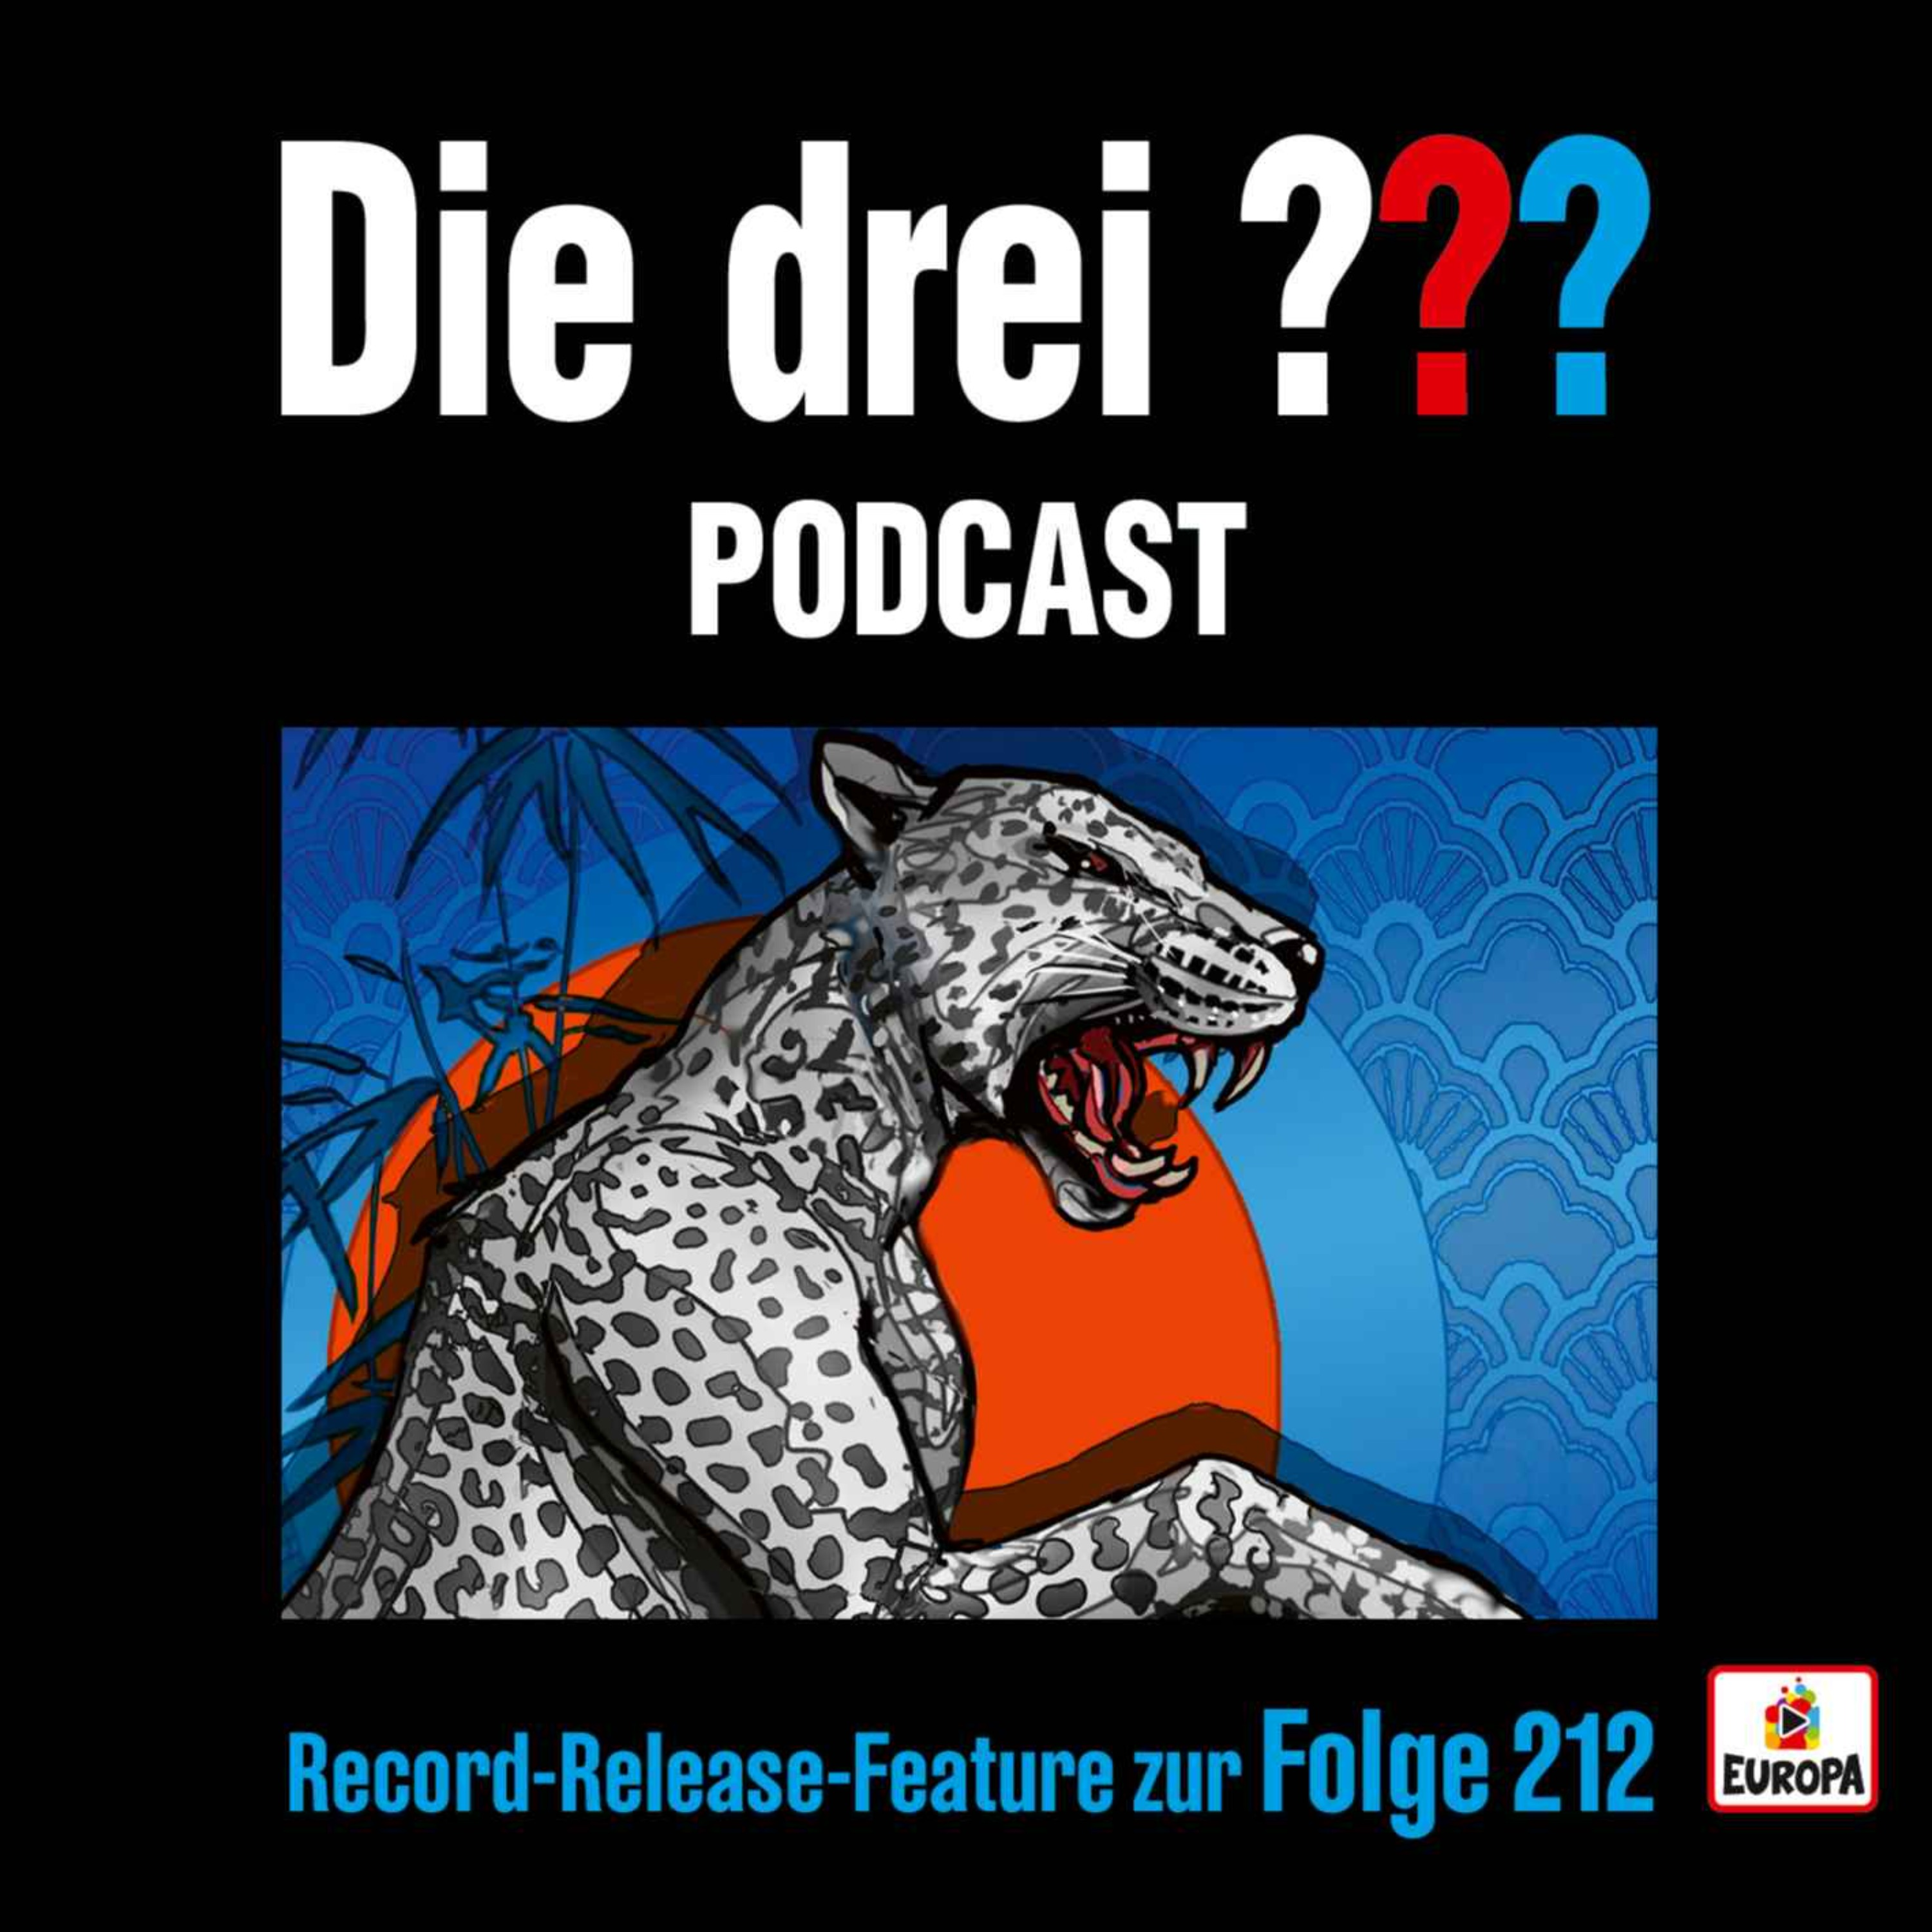 Record-Release-Feature zur Folge 212